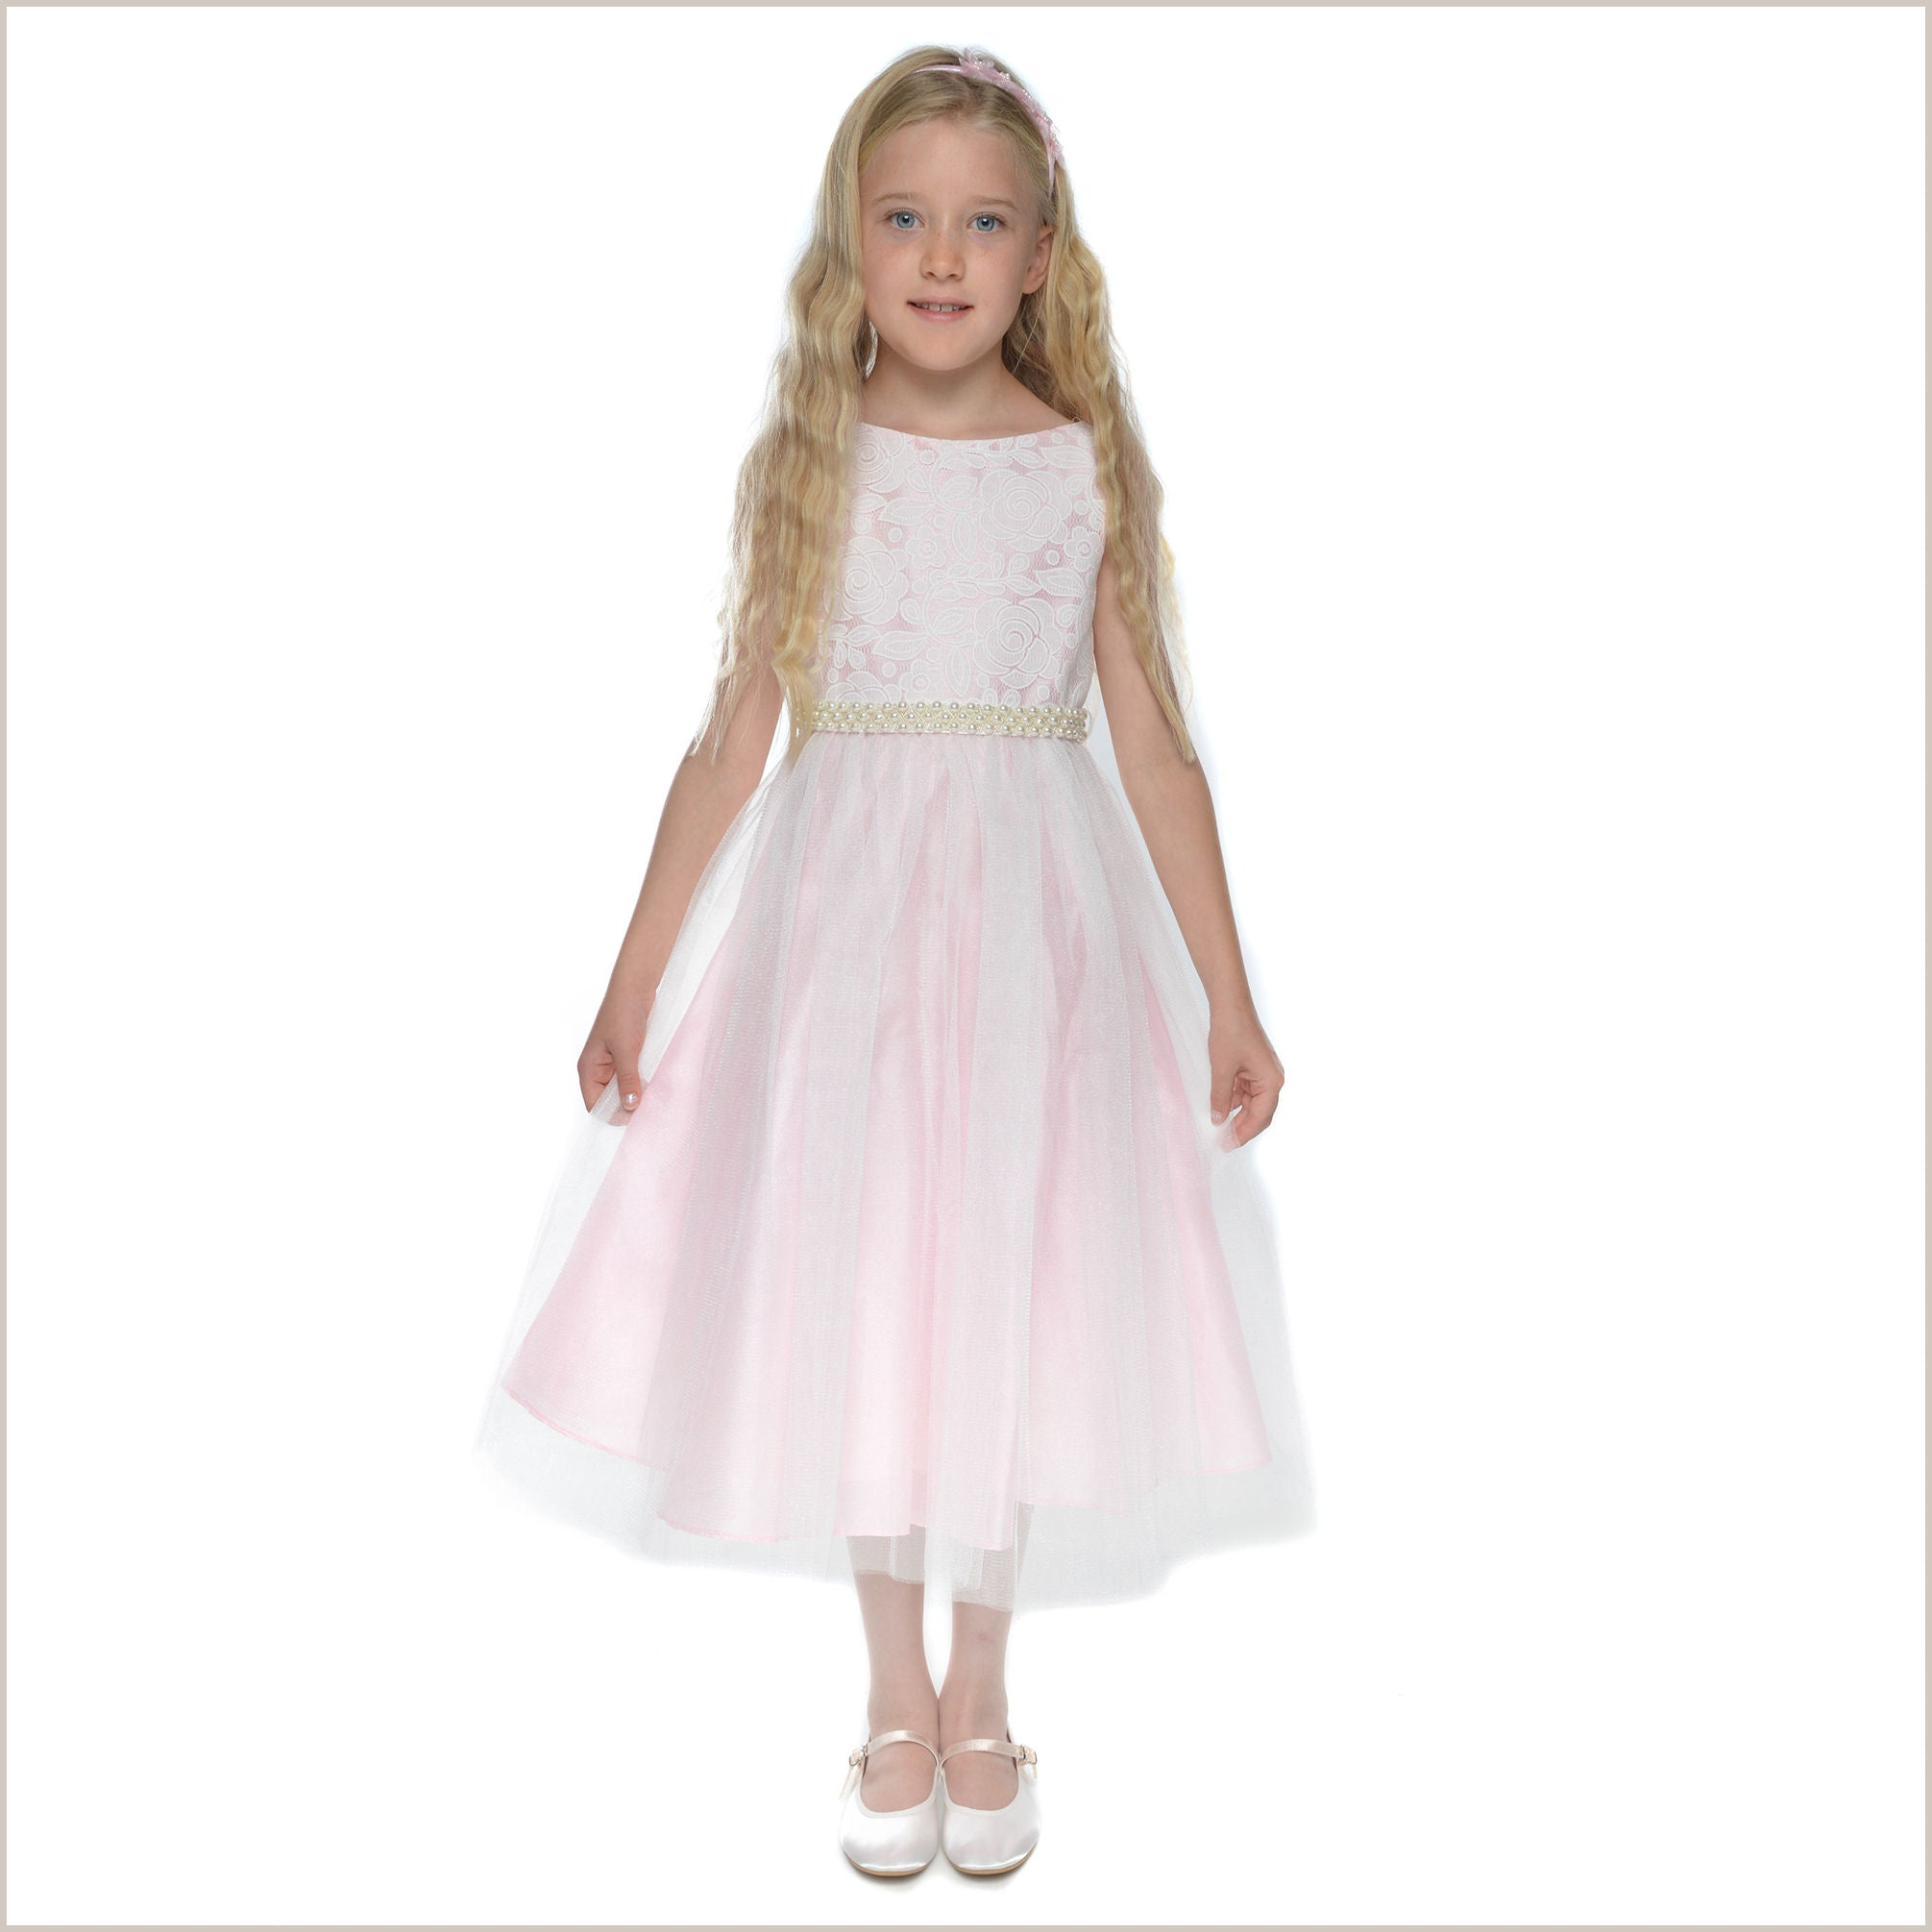 85476389842 lily pink flower girl dress baby.jpg v 1557235016